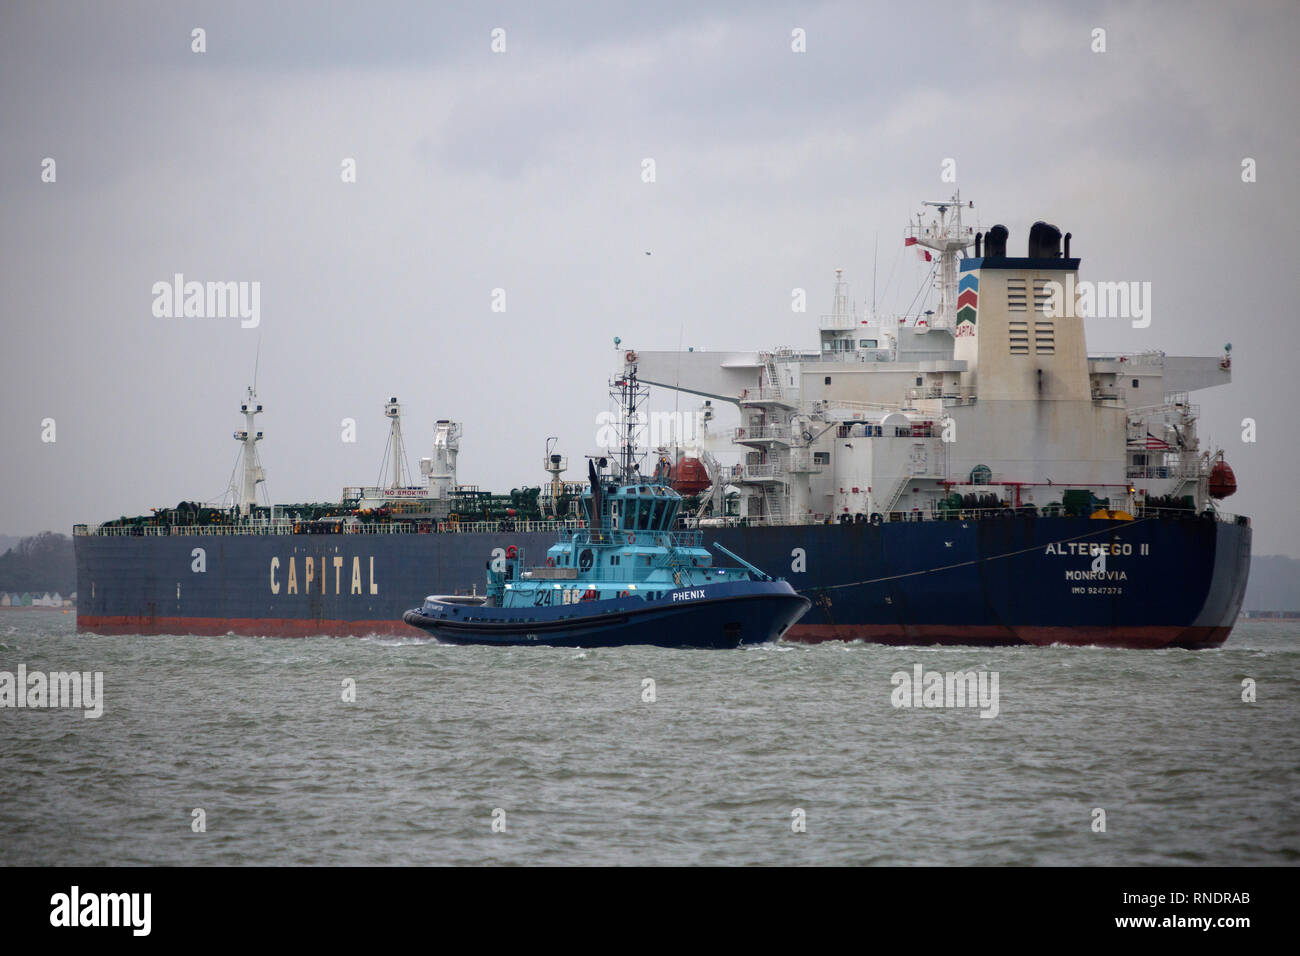 Tug, Tanker, heavily, laden, oil, maneuver, maneuvering, The Solent, Southampton, Fawley, refinery, Isle of Wight, Hampshire, England, UK, - Stock Image